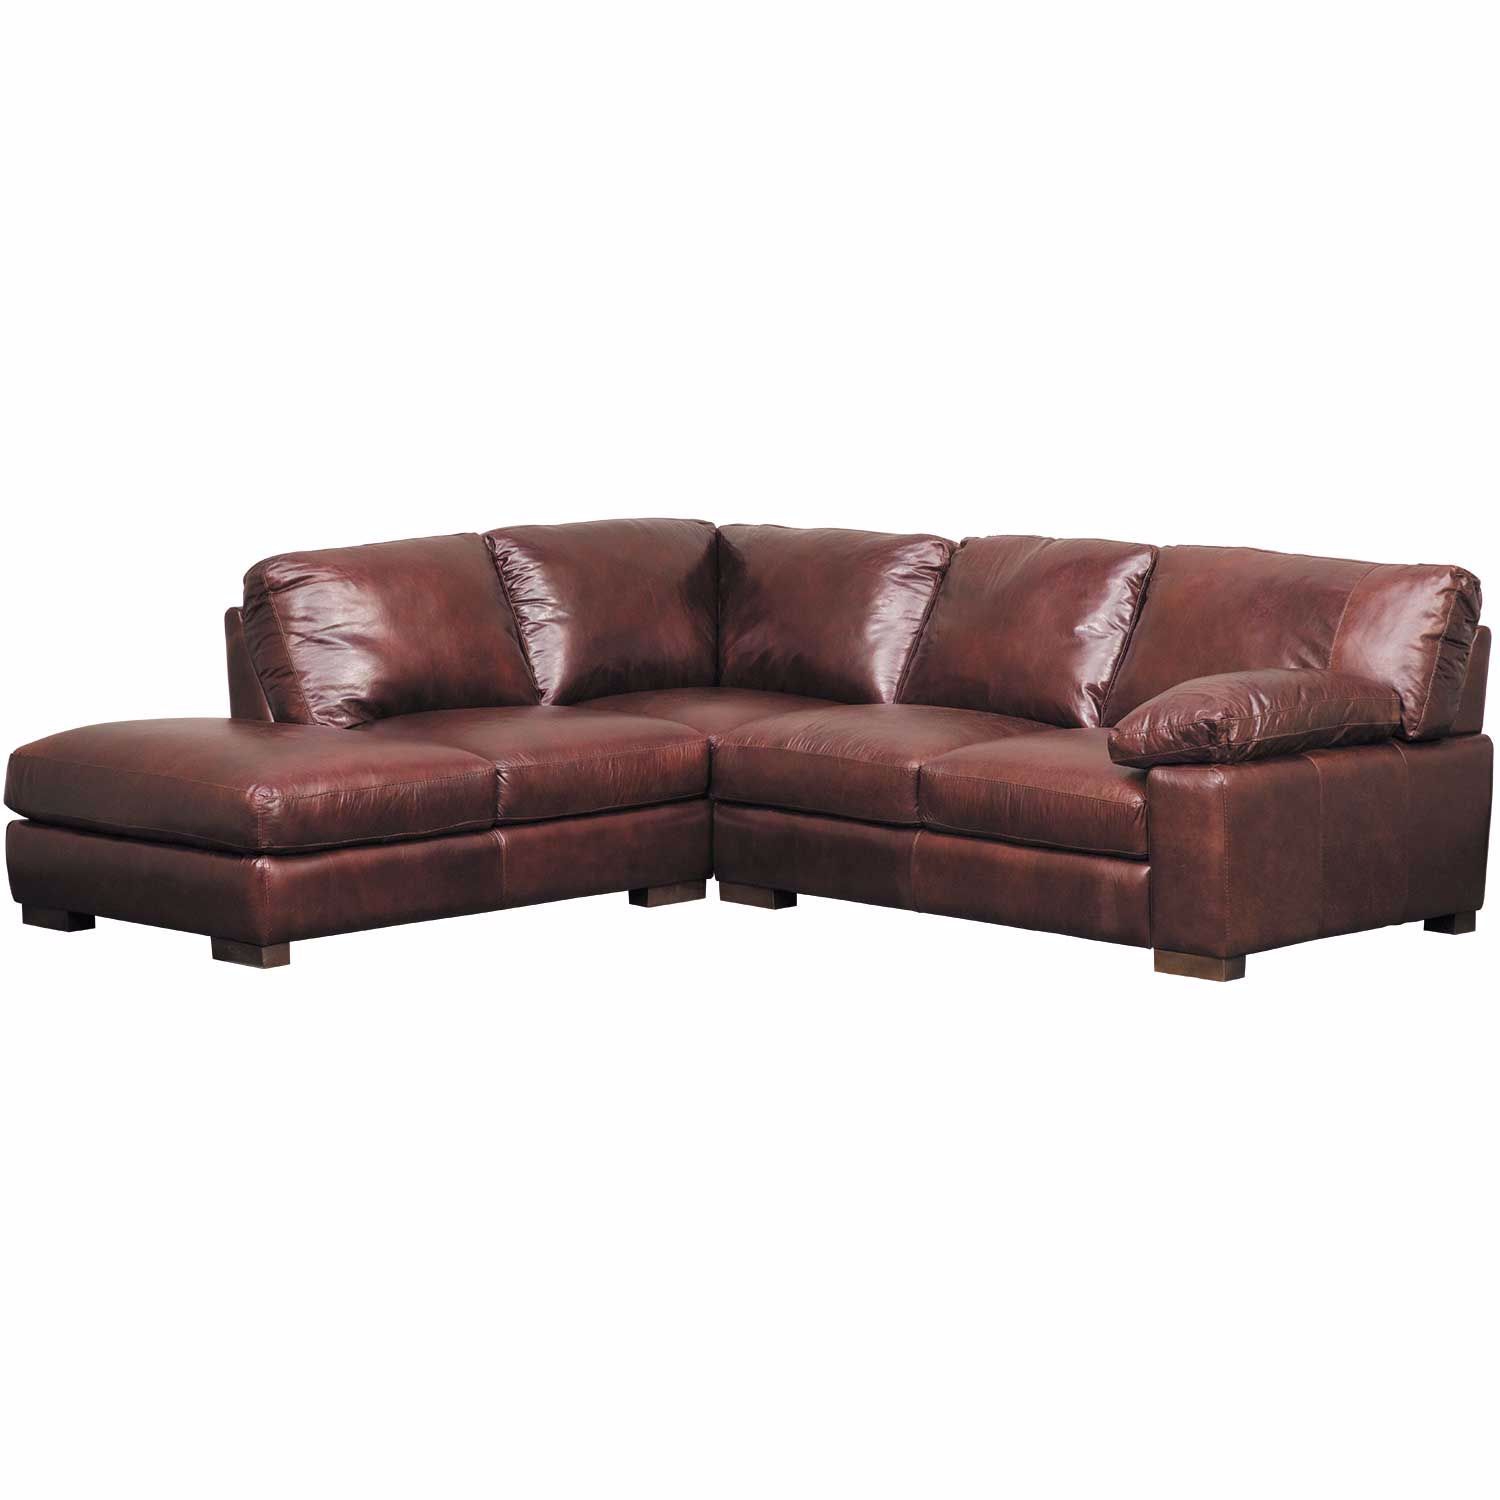 Pleasant Barcelona All Leather 2 Piece Sectional With Laf Chaise Unemploymentrelief Wooden Chair Designs For Living Room Unemploymentrelieforg